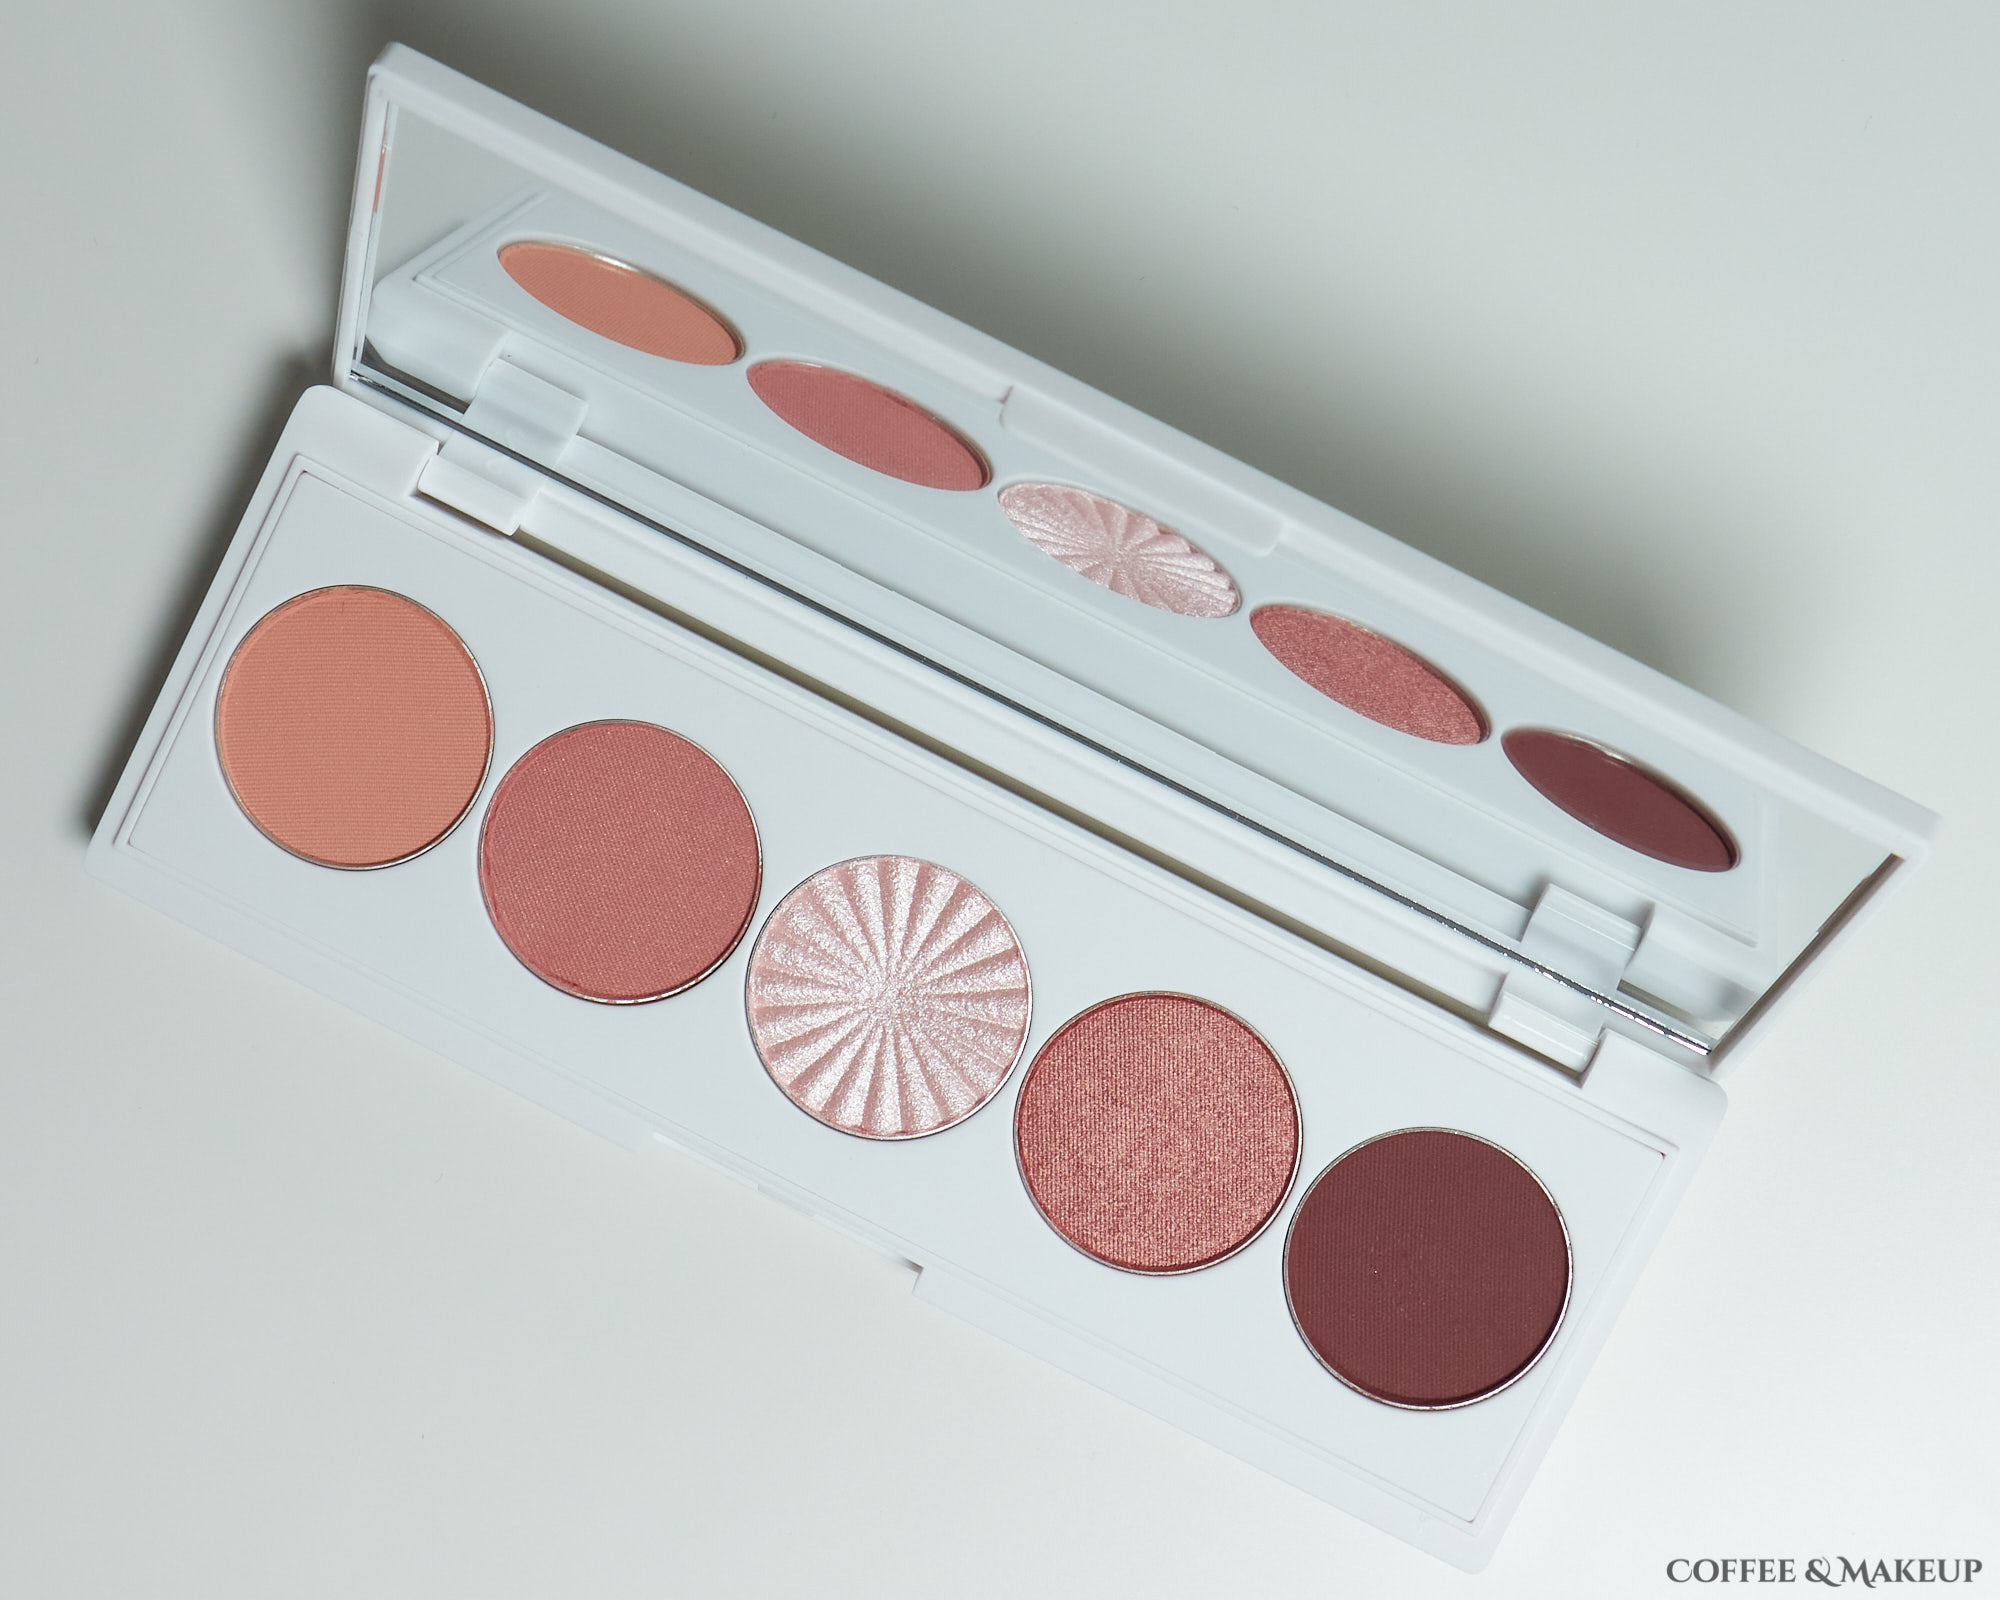 Ofra Sweet Dreams Signature Palette